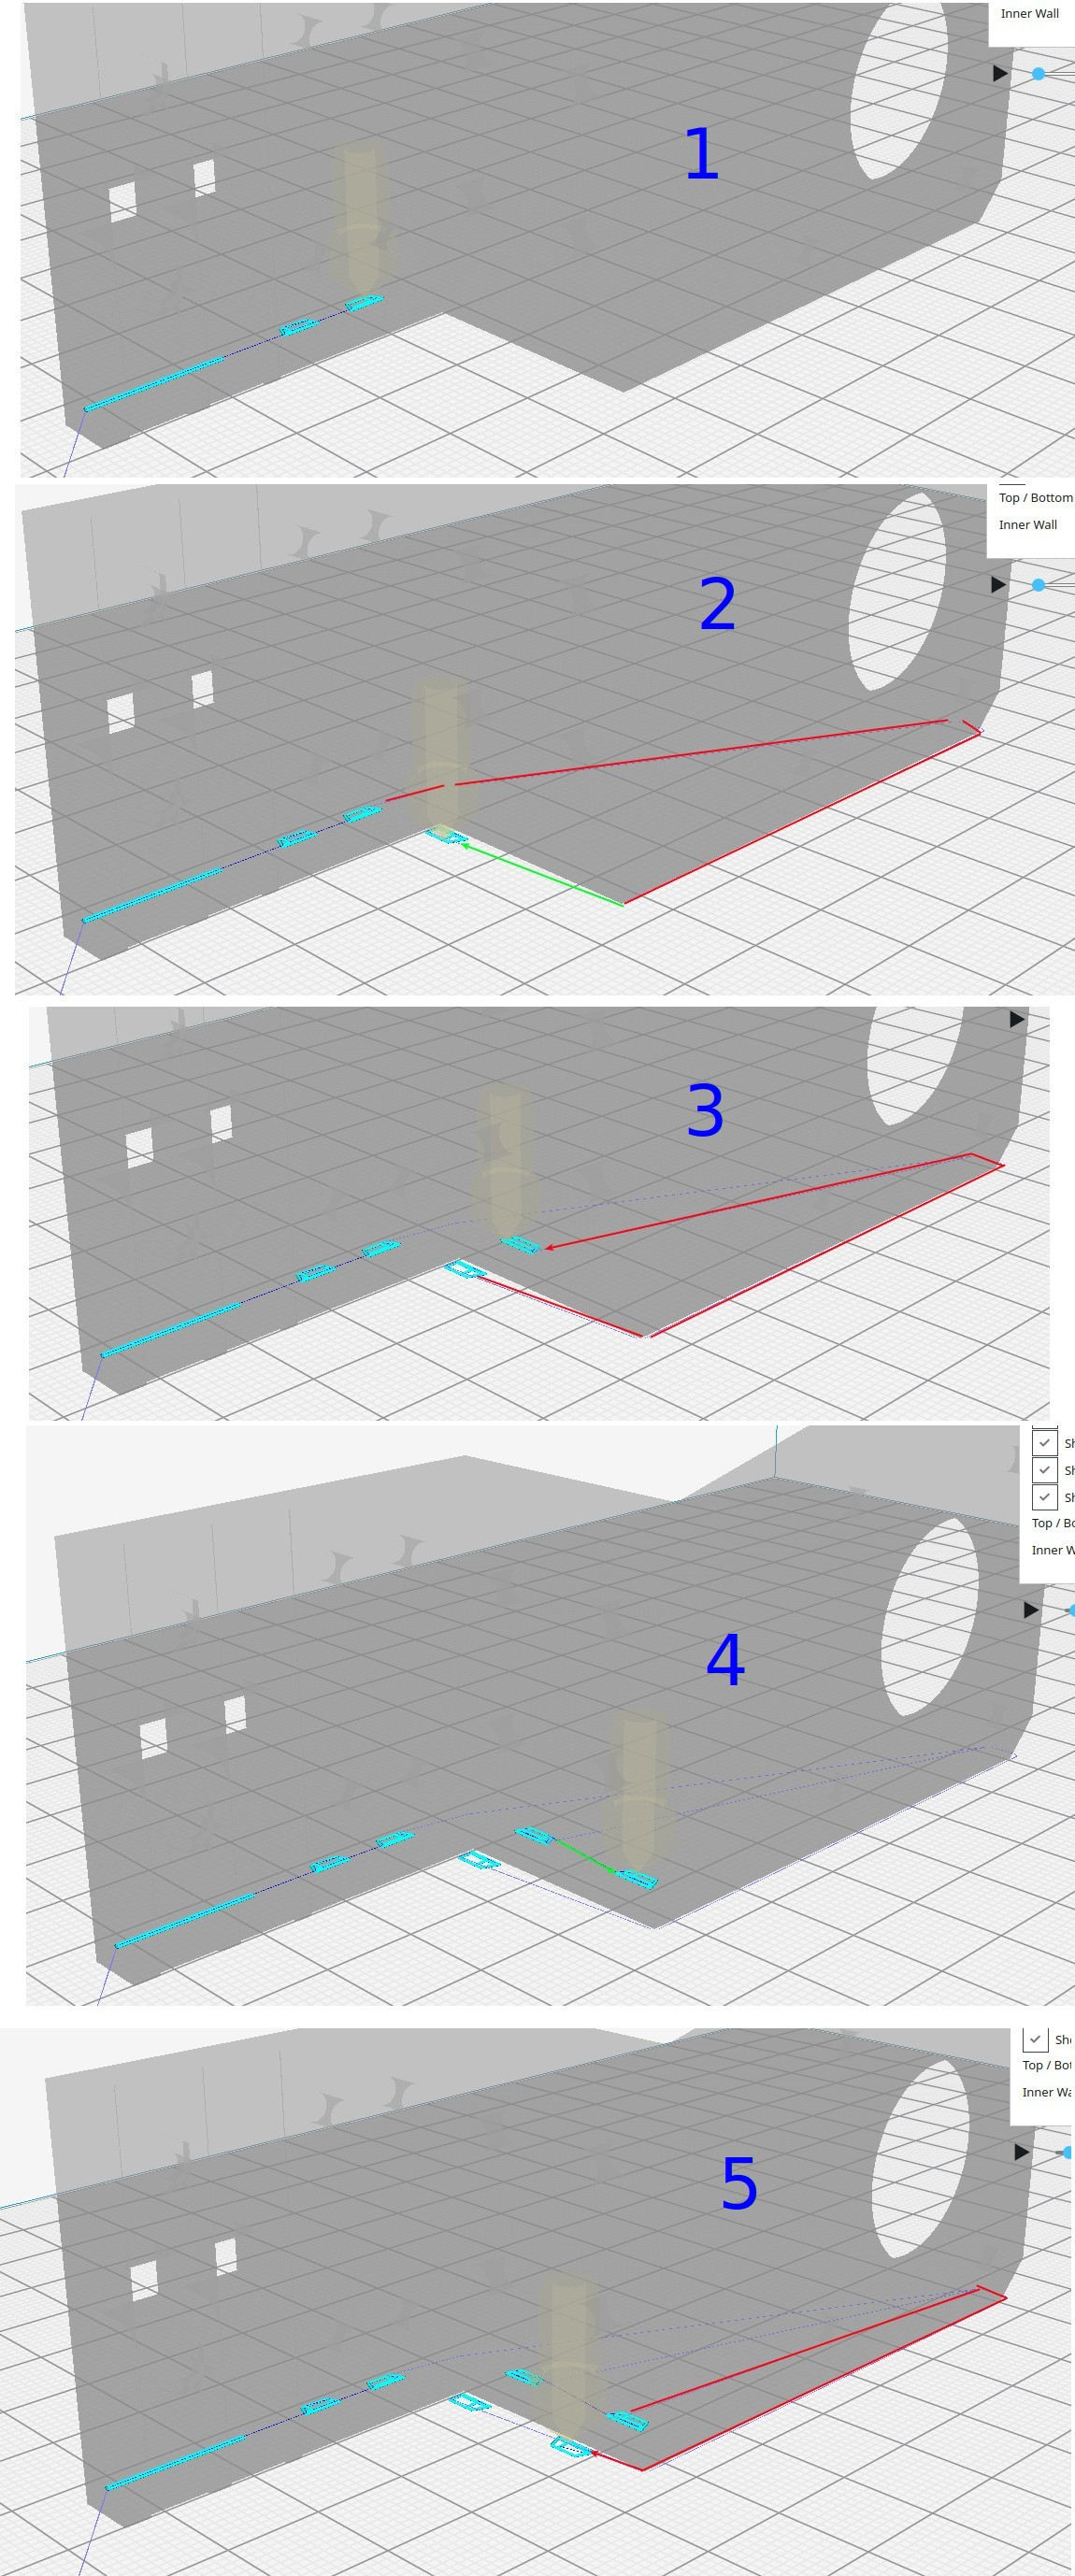 Cura makes too many movements · Issue #4287 · Ultimaker/Cura